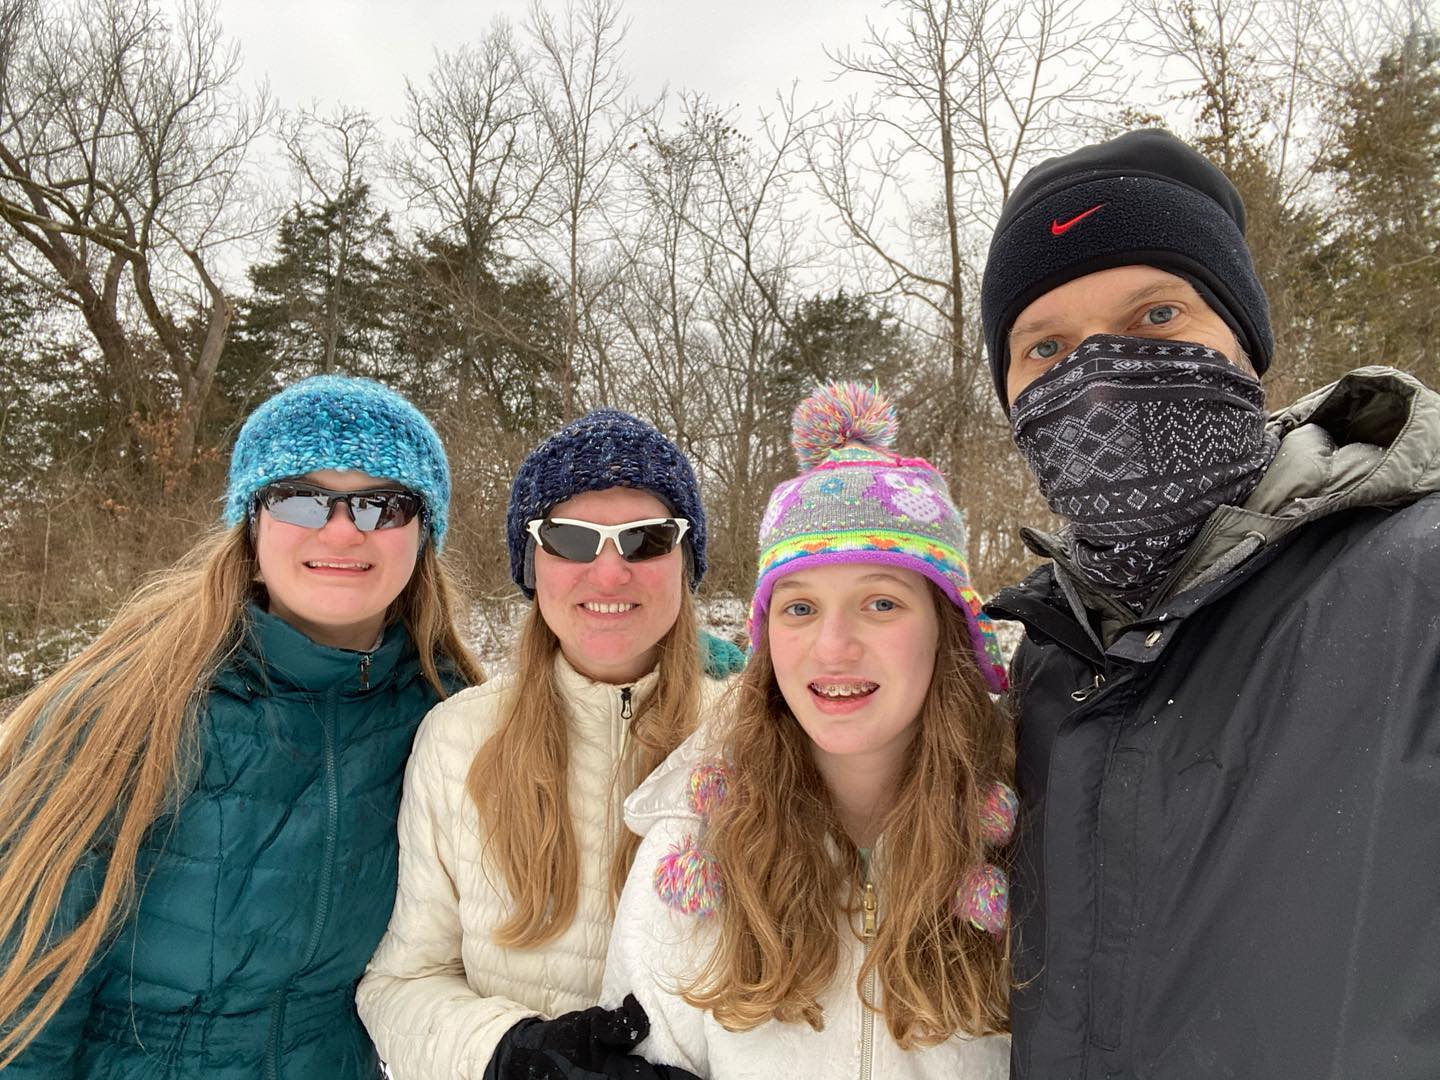 This week has been a lot of fun! #family #snow